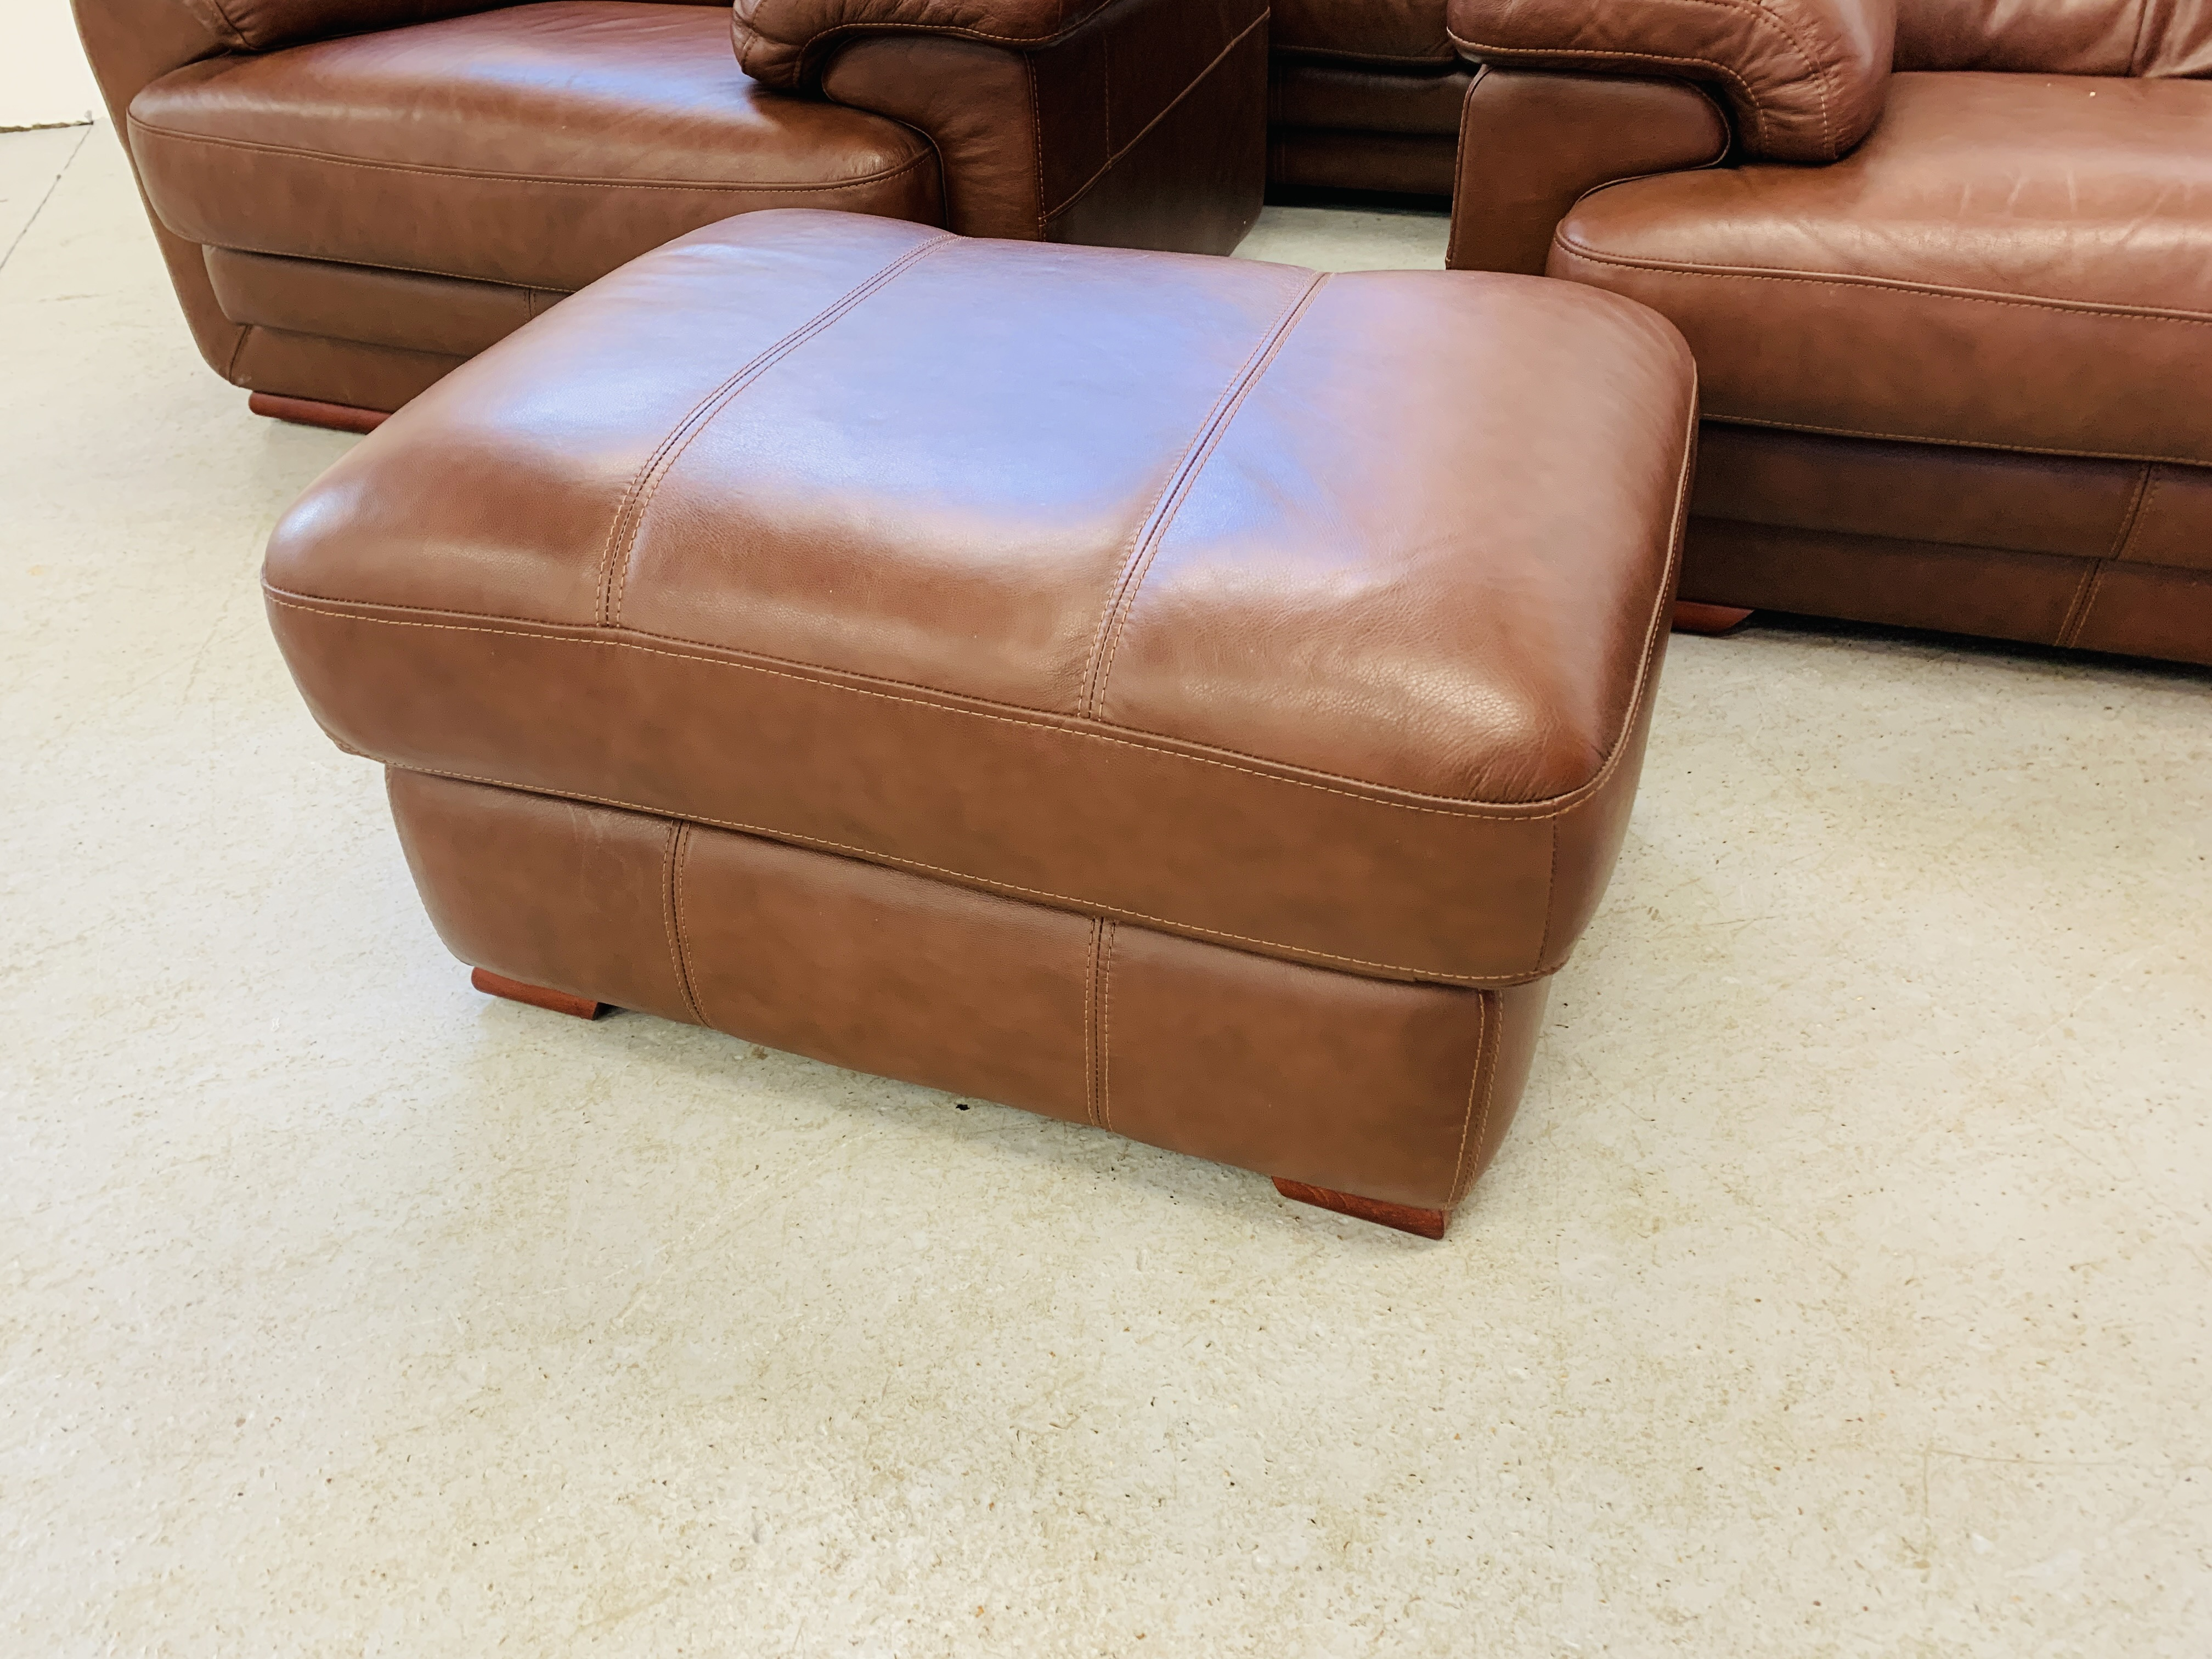 A GOOD QUALITY TAN LEATHER THREE PIECE LOUNGE SUITE WITH MATCHING POUFFE - Image 2 of 17